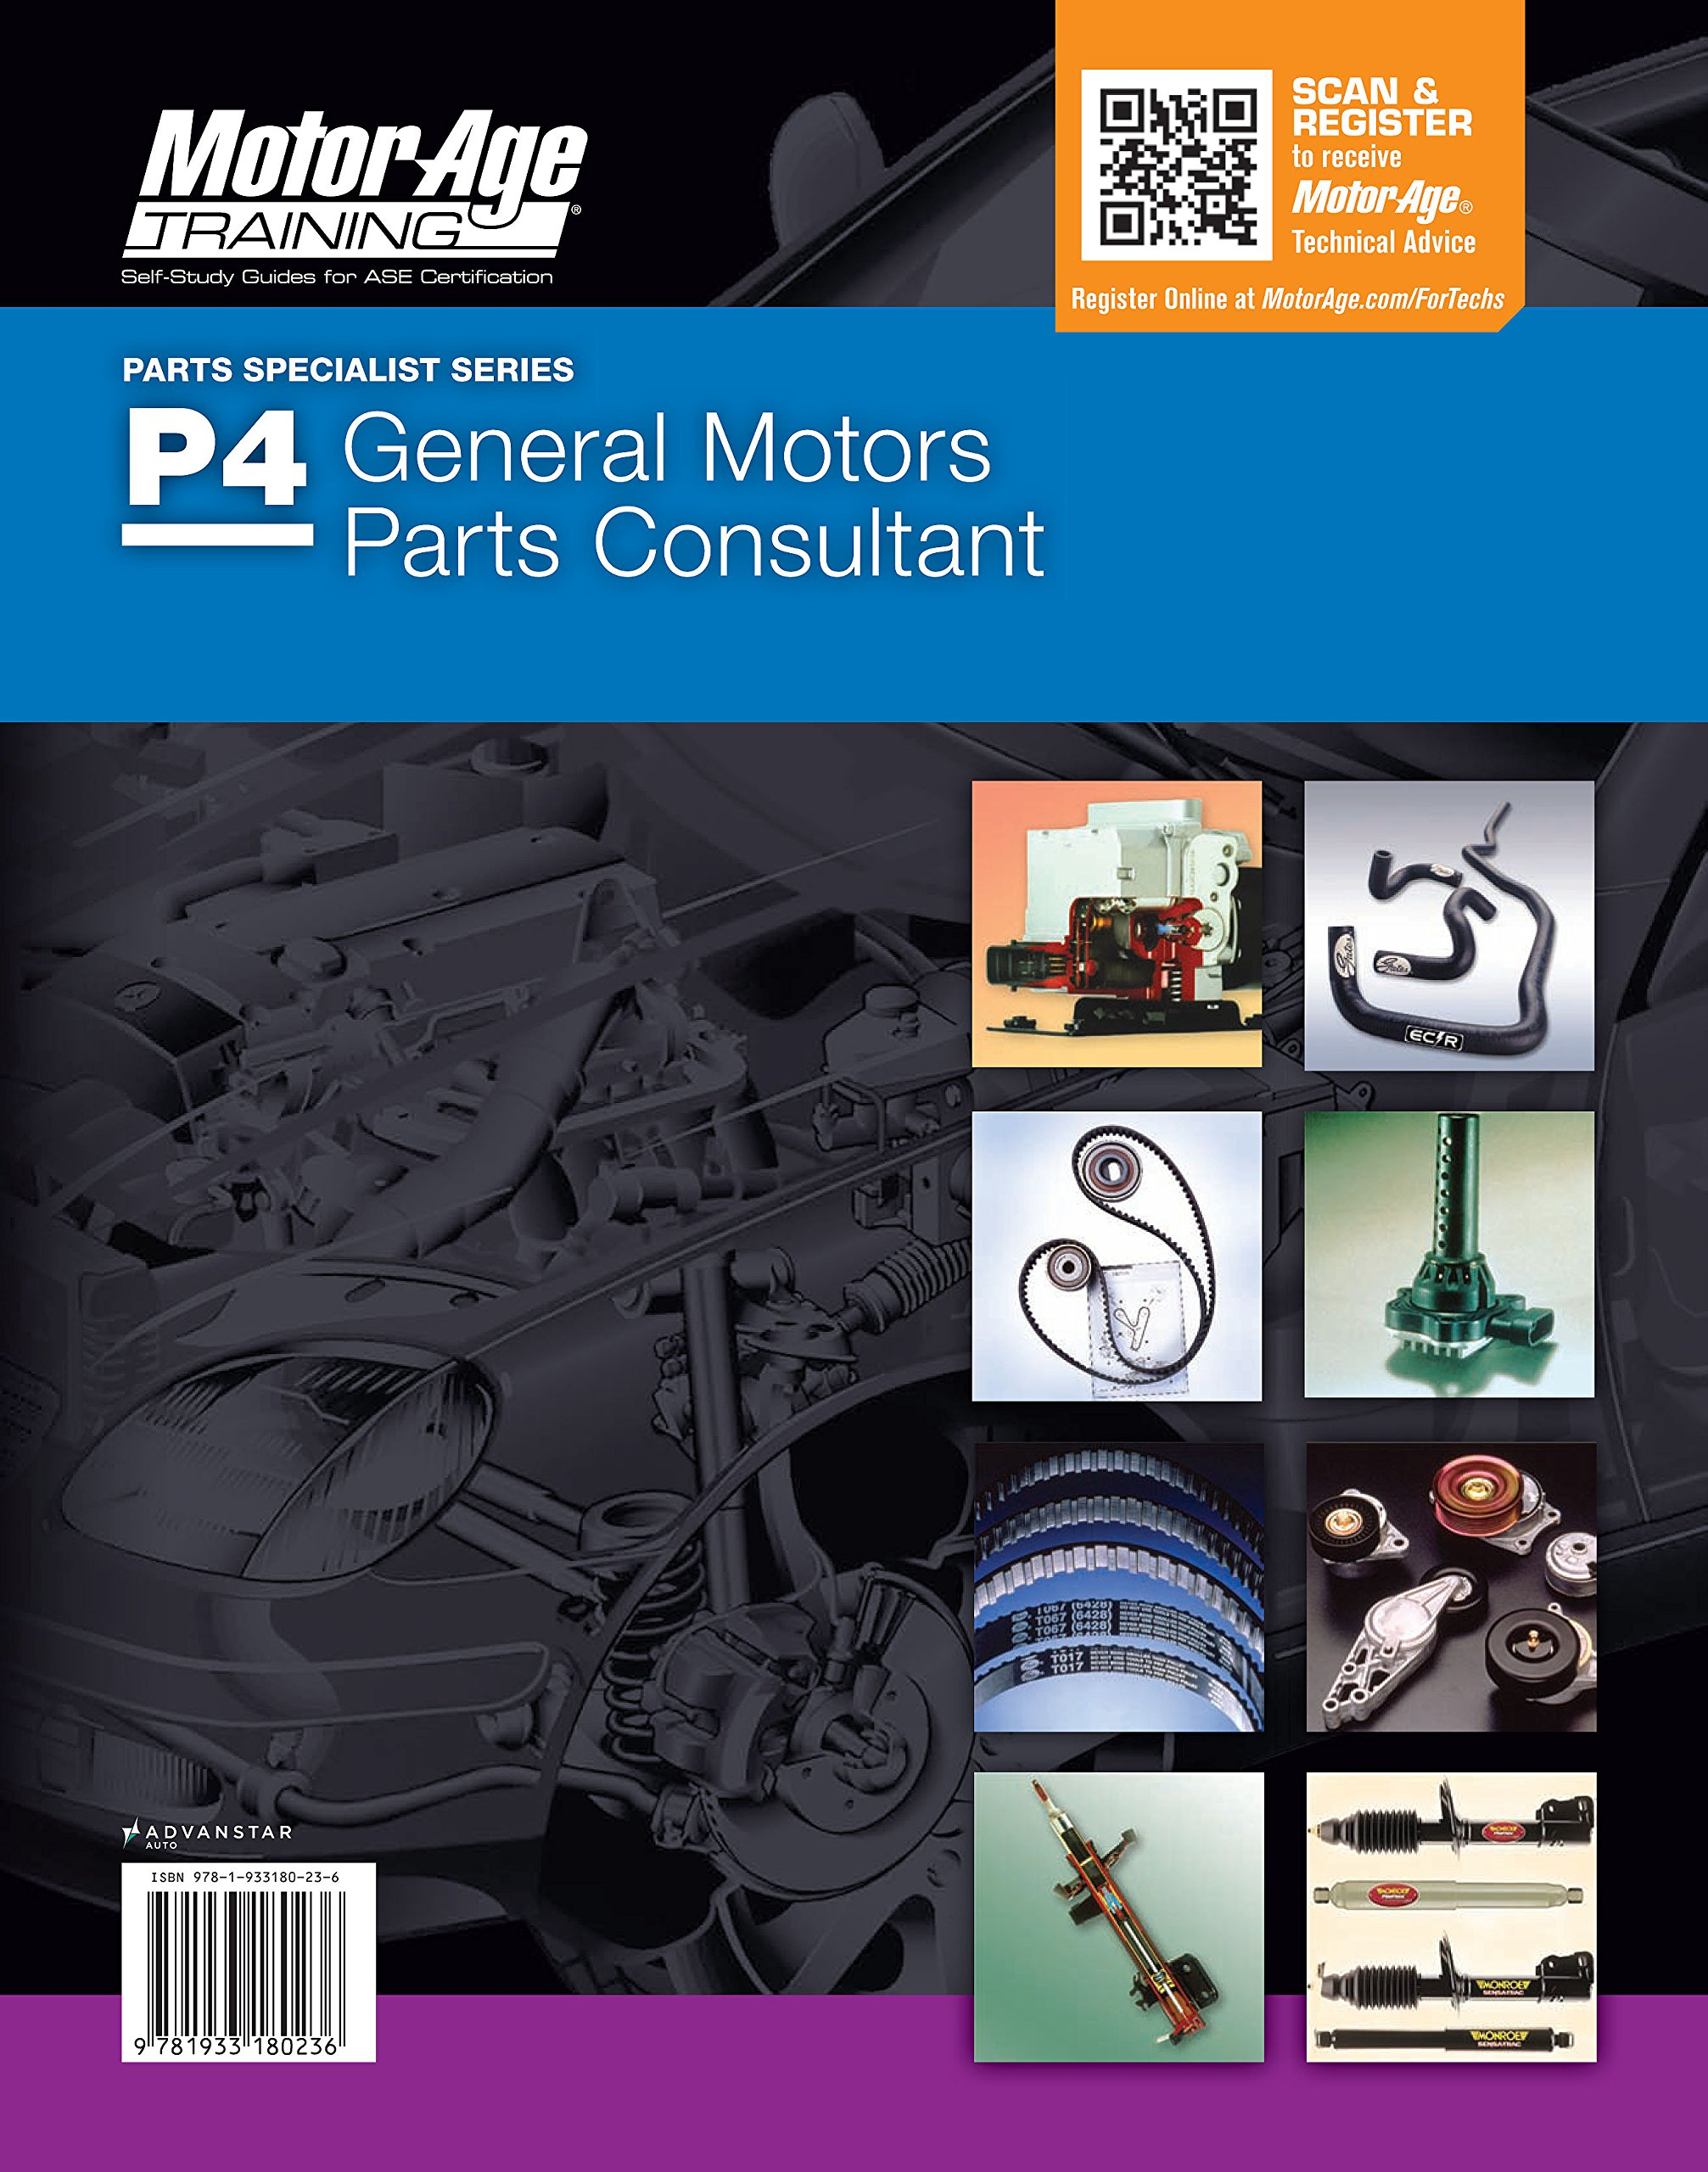 P4 General Motors Parts Consultant The Motor Age Training Self